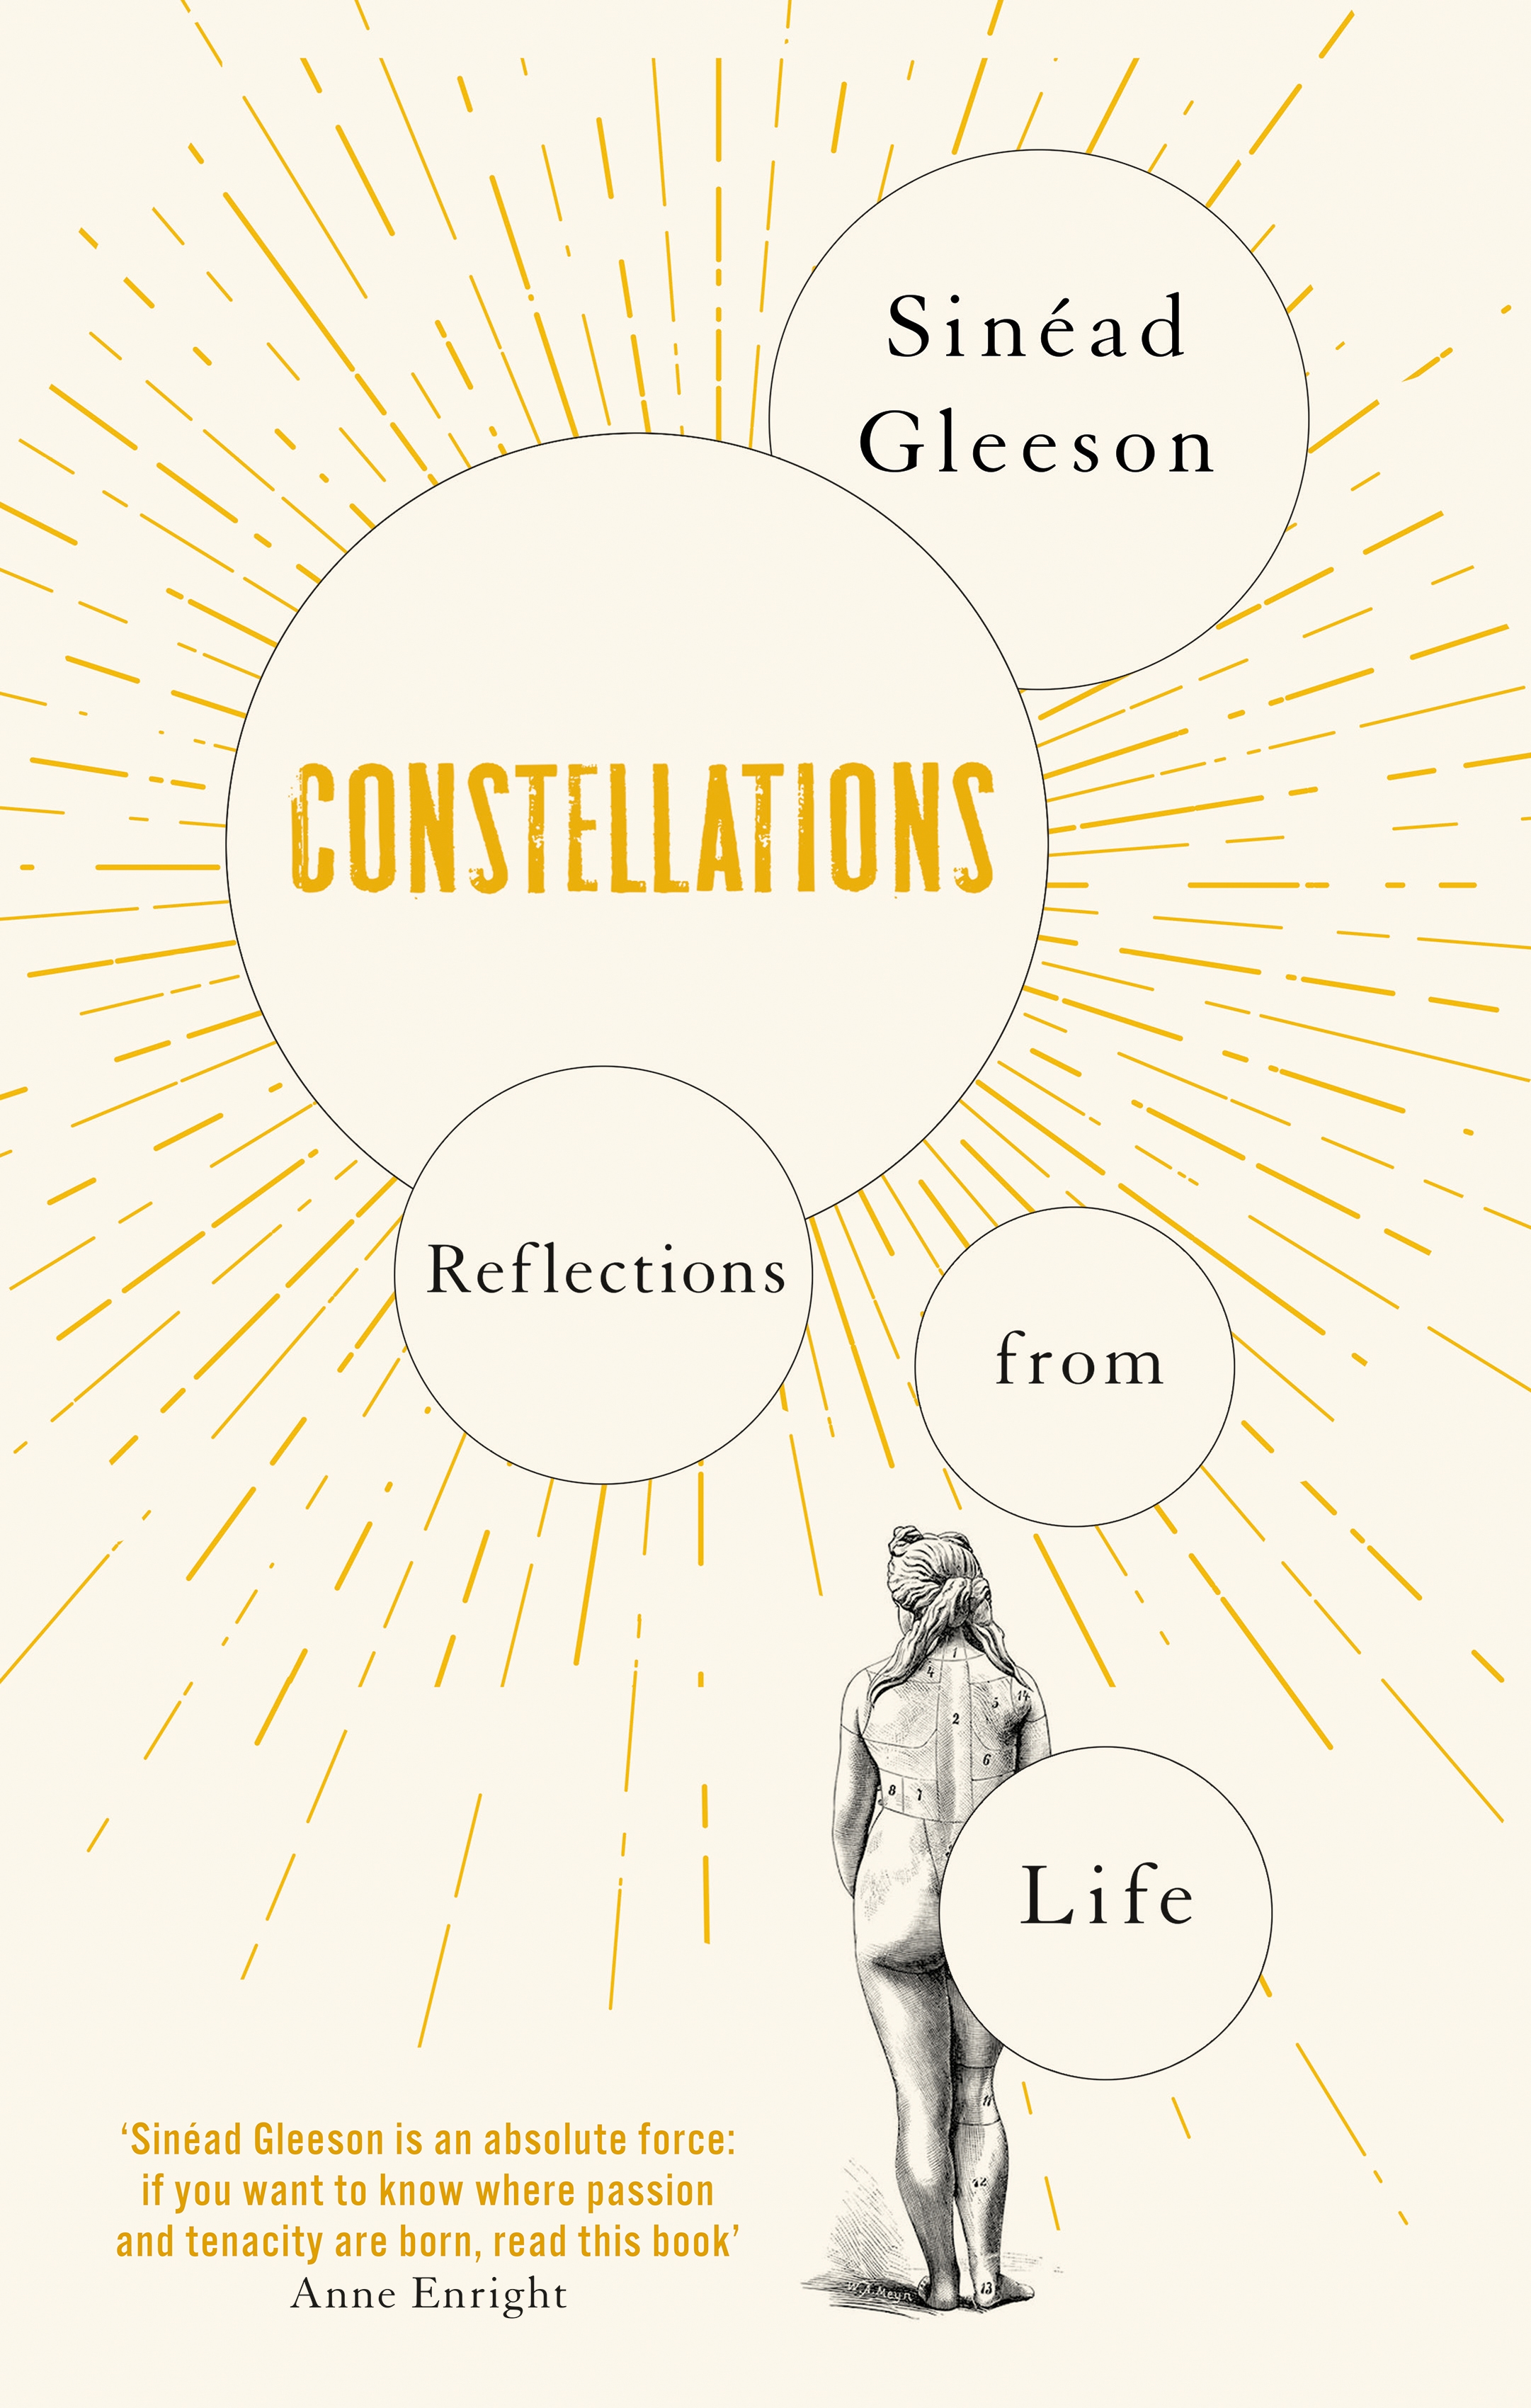 Constellations by Sinead Gleeson